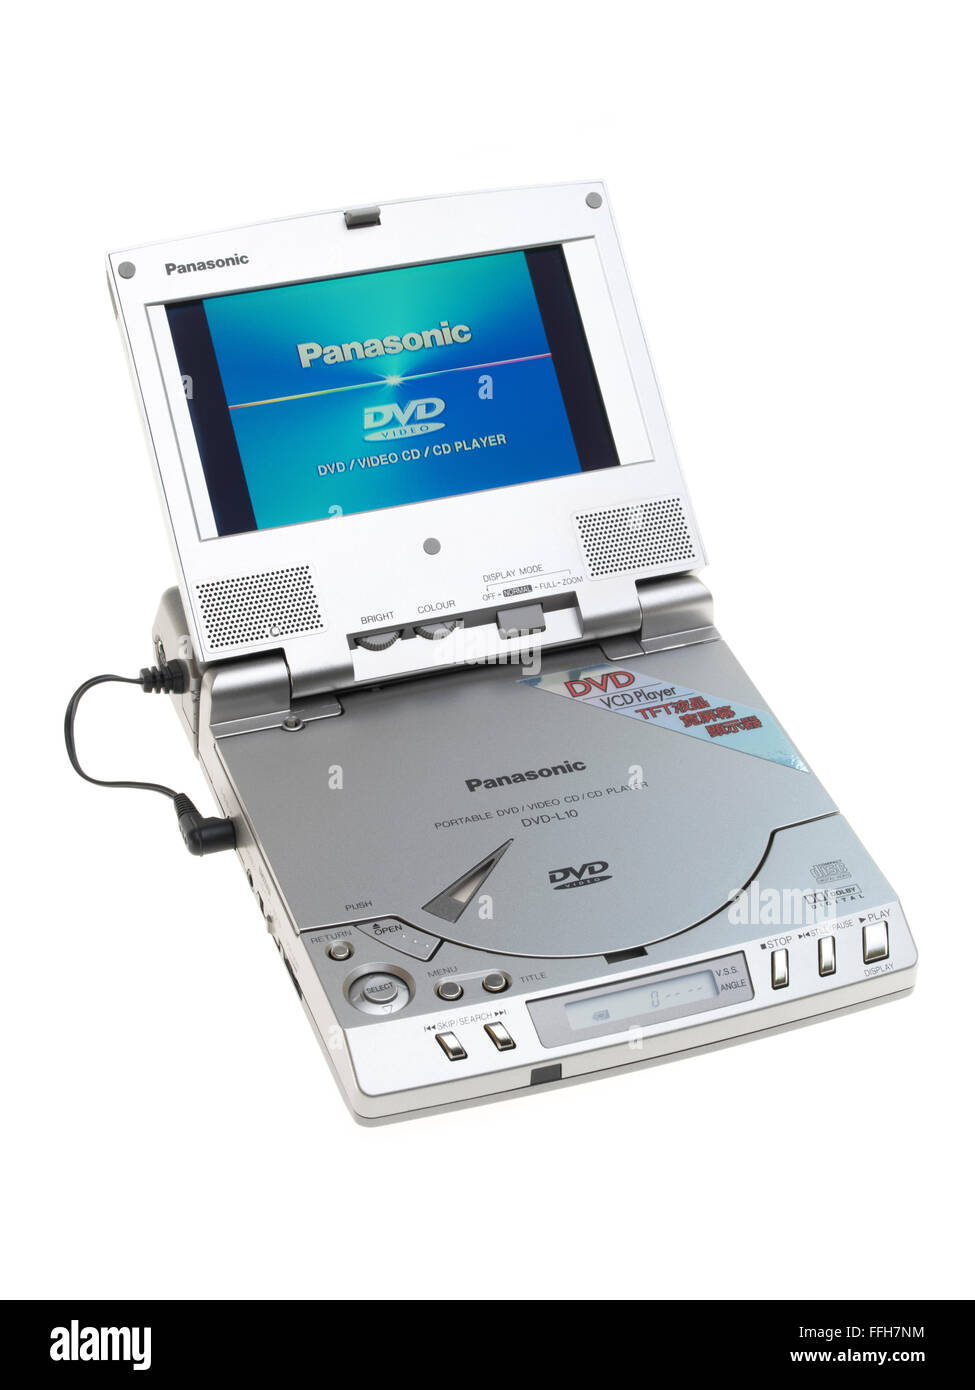 Panasonic DVD-L10, the world's first and smallest portable  DVD player with a built-in LCD screen 1998 - Stock Image